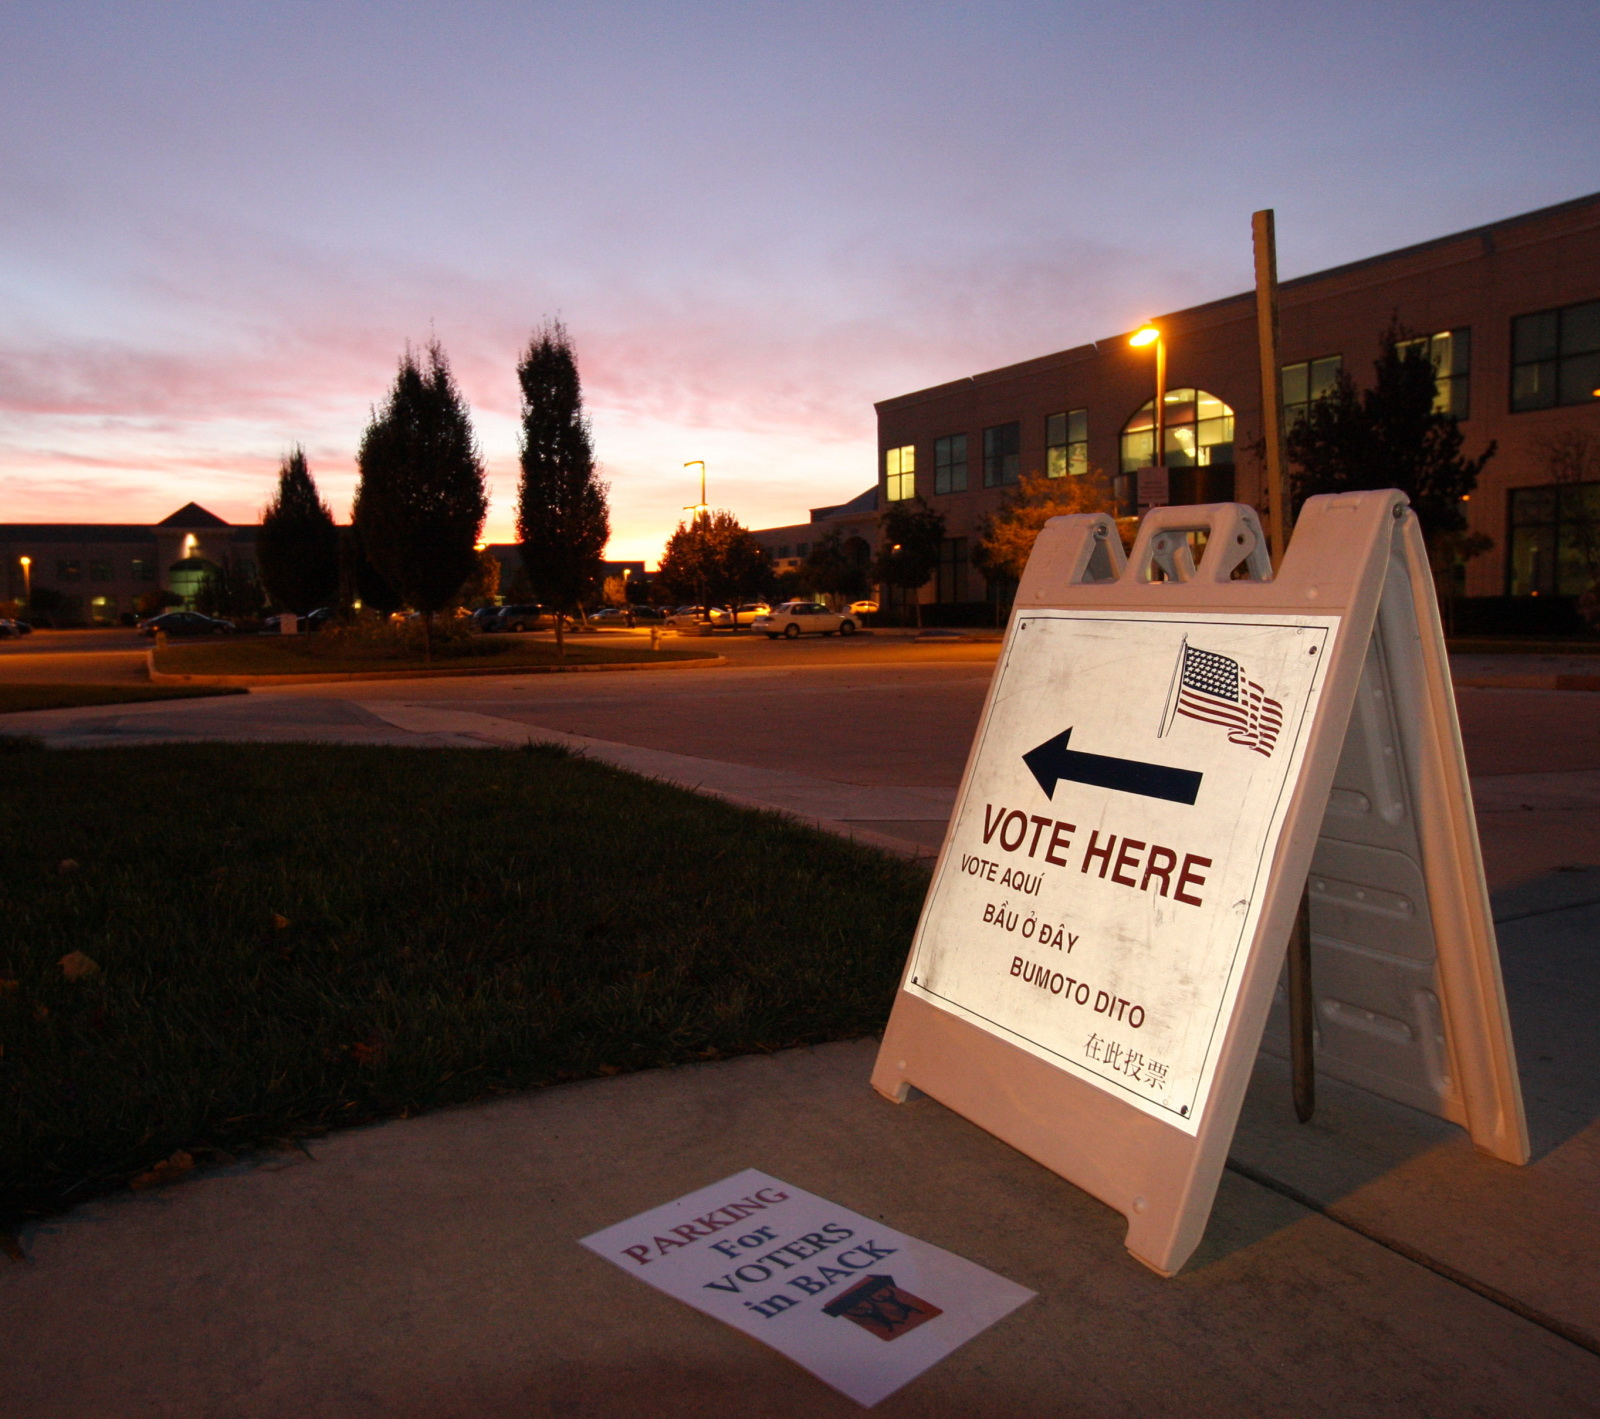 """Election Day 2008, North San Jose"" by Shayan (USA) is licensed under CC BY 2.0"